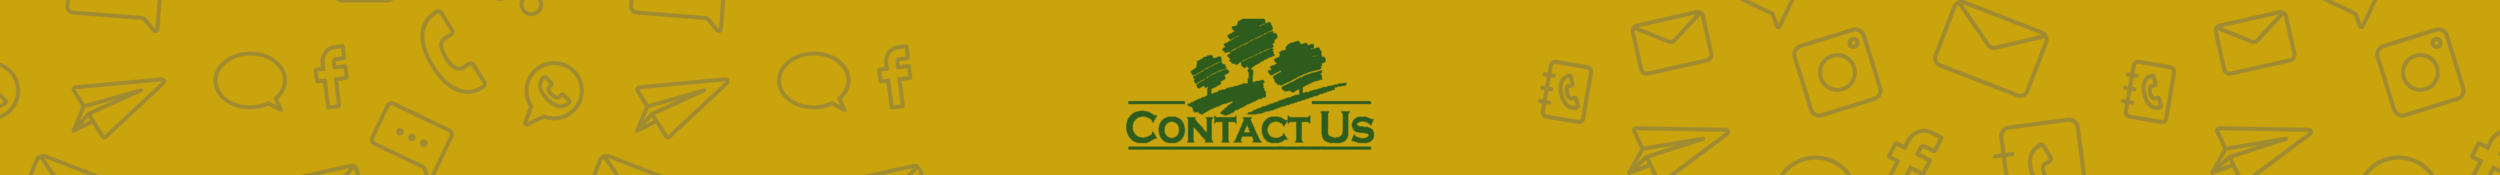 Contact banner burnham hover.png